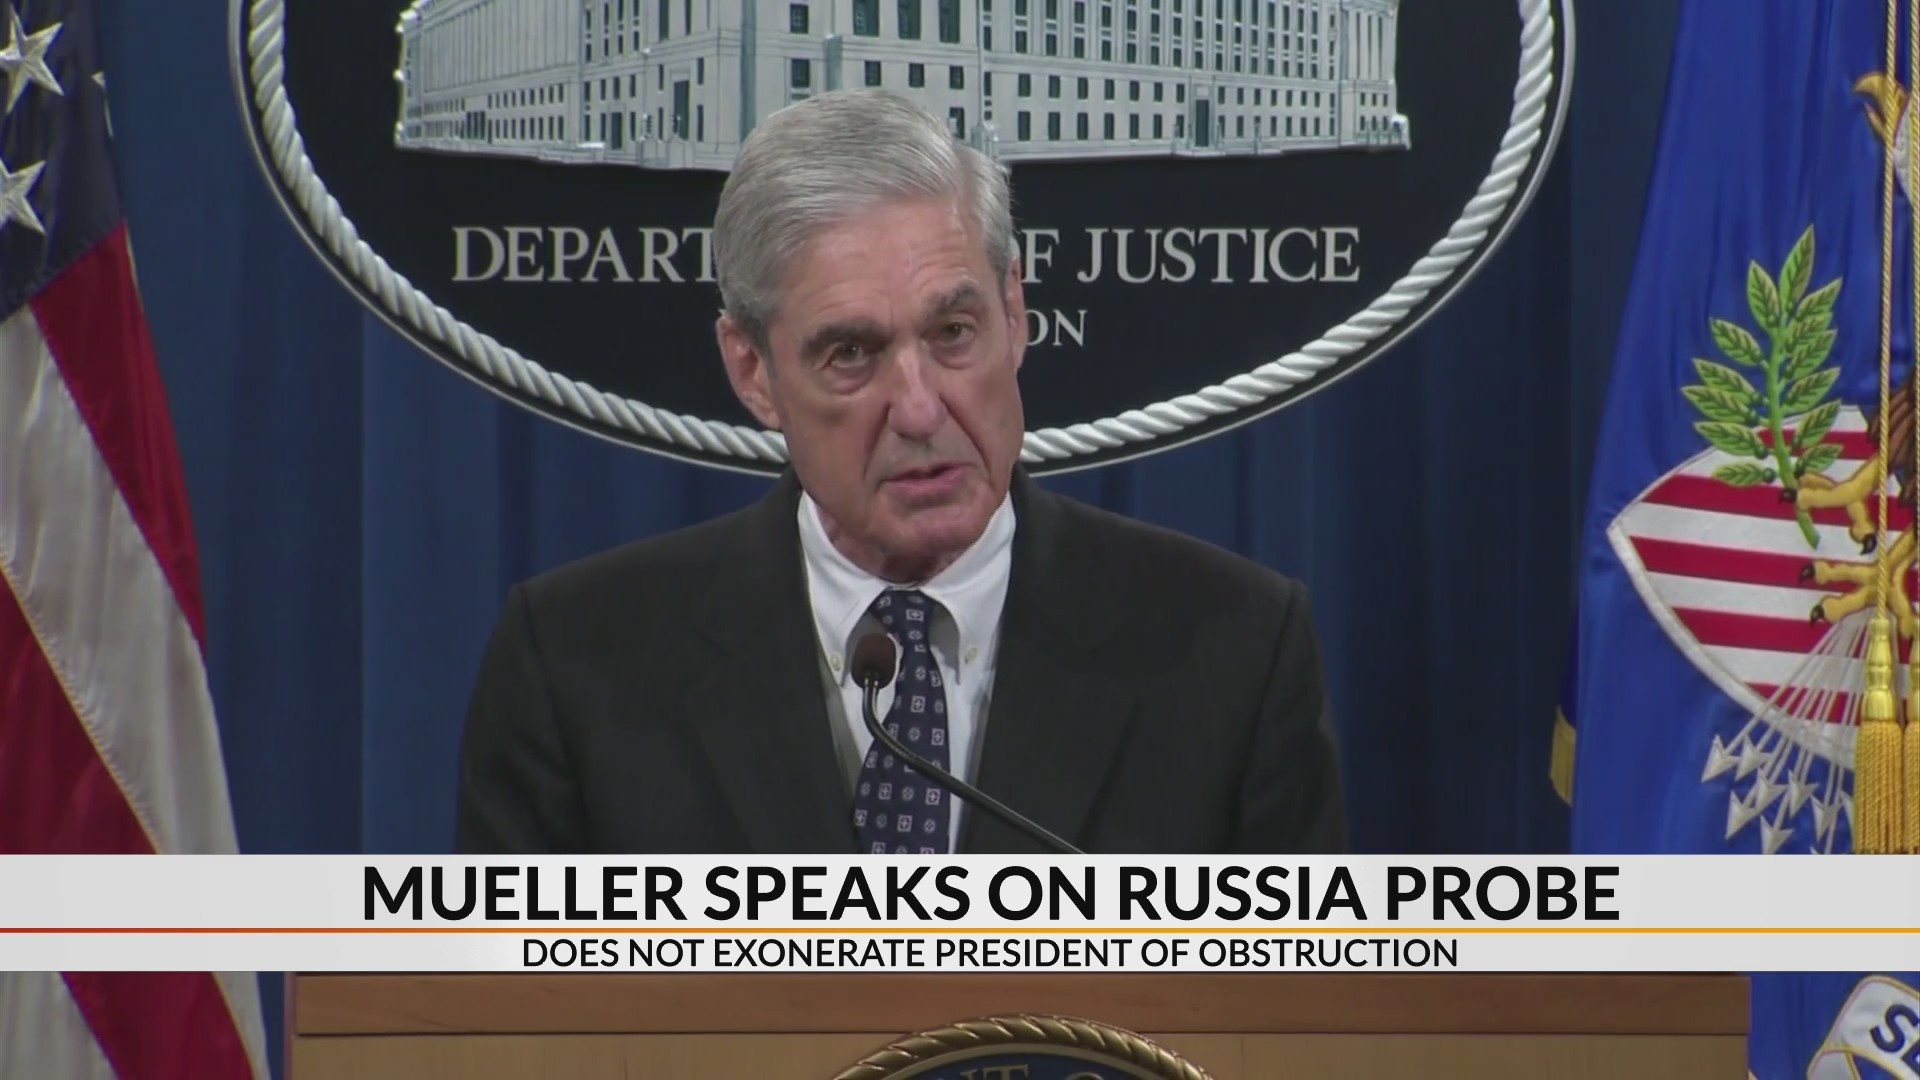 Mueller_speaks_on_Russia_probe_0_20190530094258